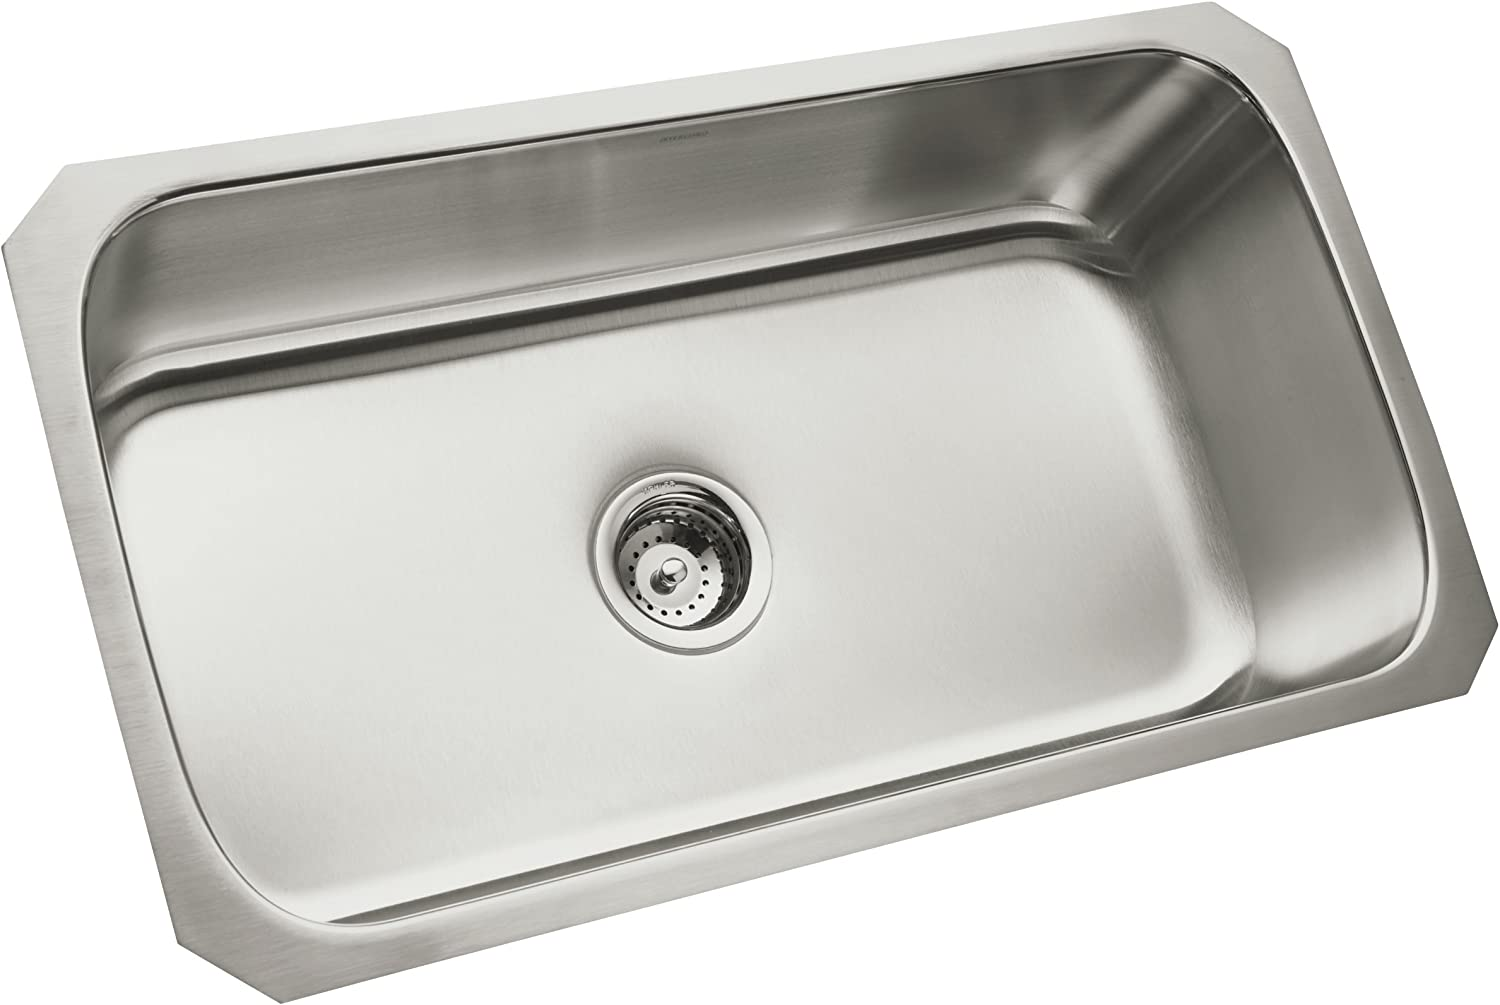 STERLING 11600-NA 32-Inch McAllister 32-Inch by 18-Inch Under-Mount Single Bowl Kitchen Sink, Stainless Steel